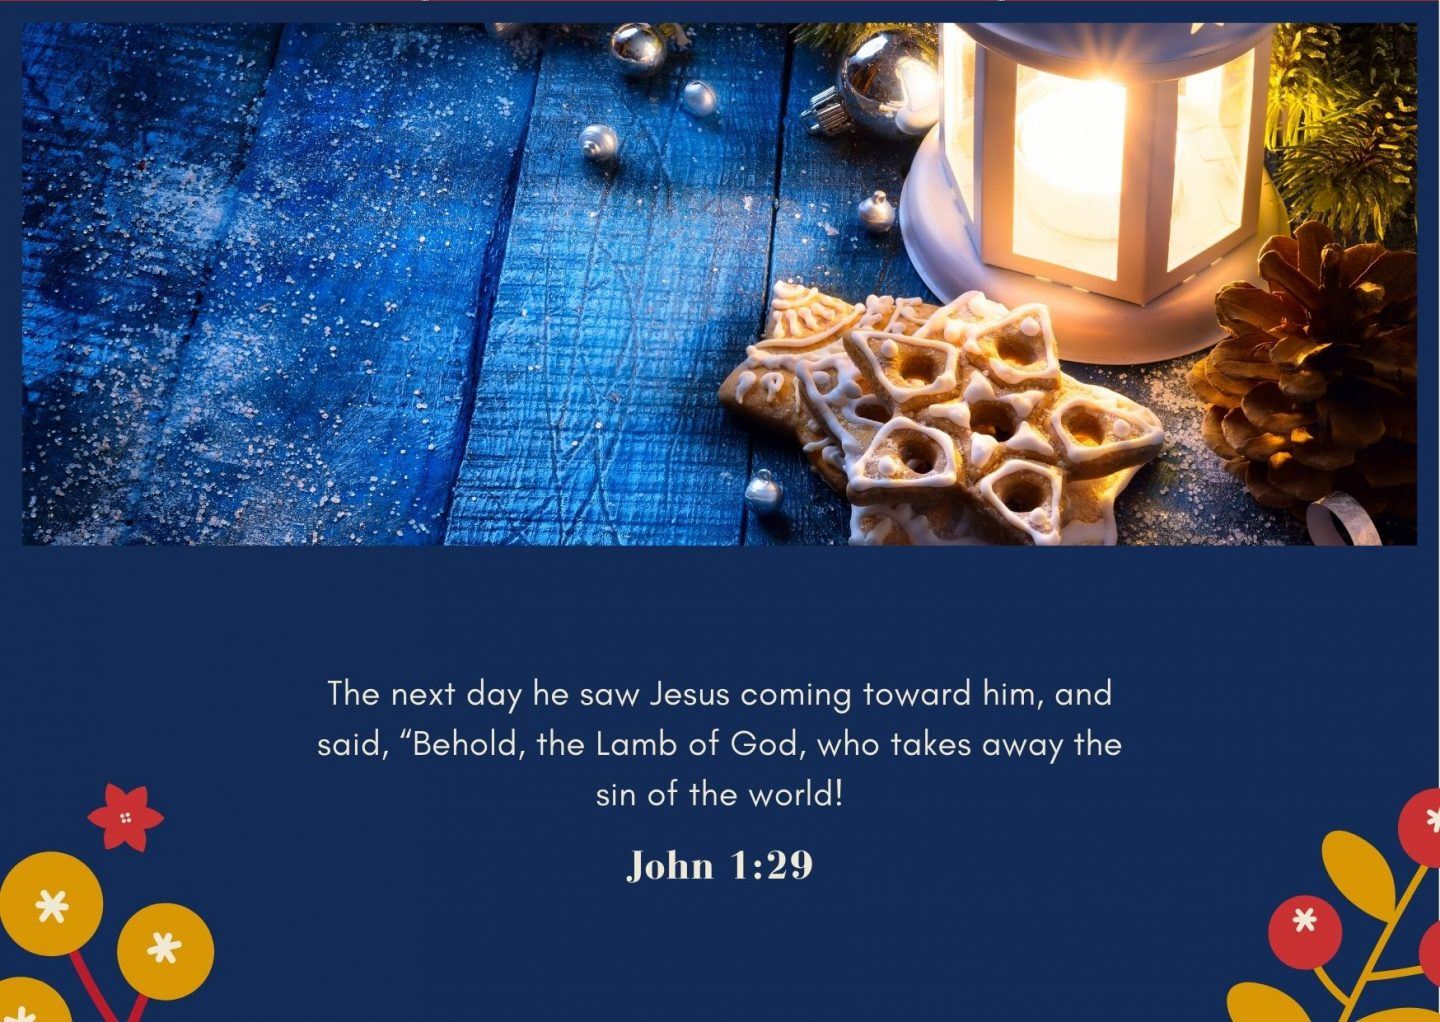 """The next day he saw Jesus coming toward him, and said, """"Behold, the Lamb of God, who takes away the sin of the world! John 1:29"""